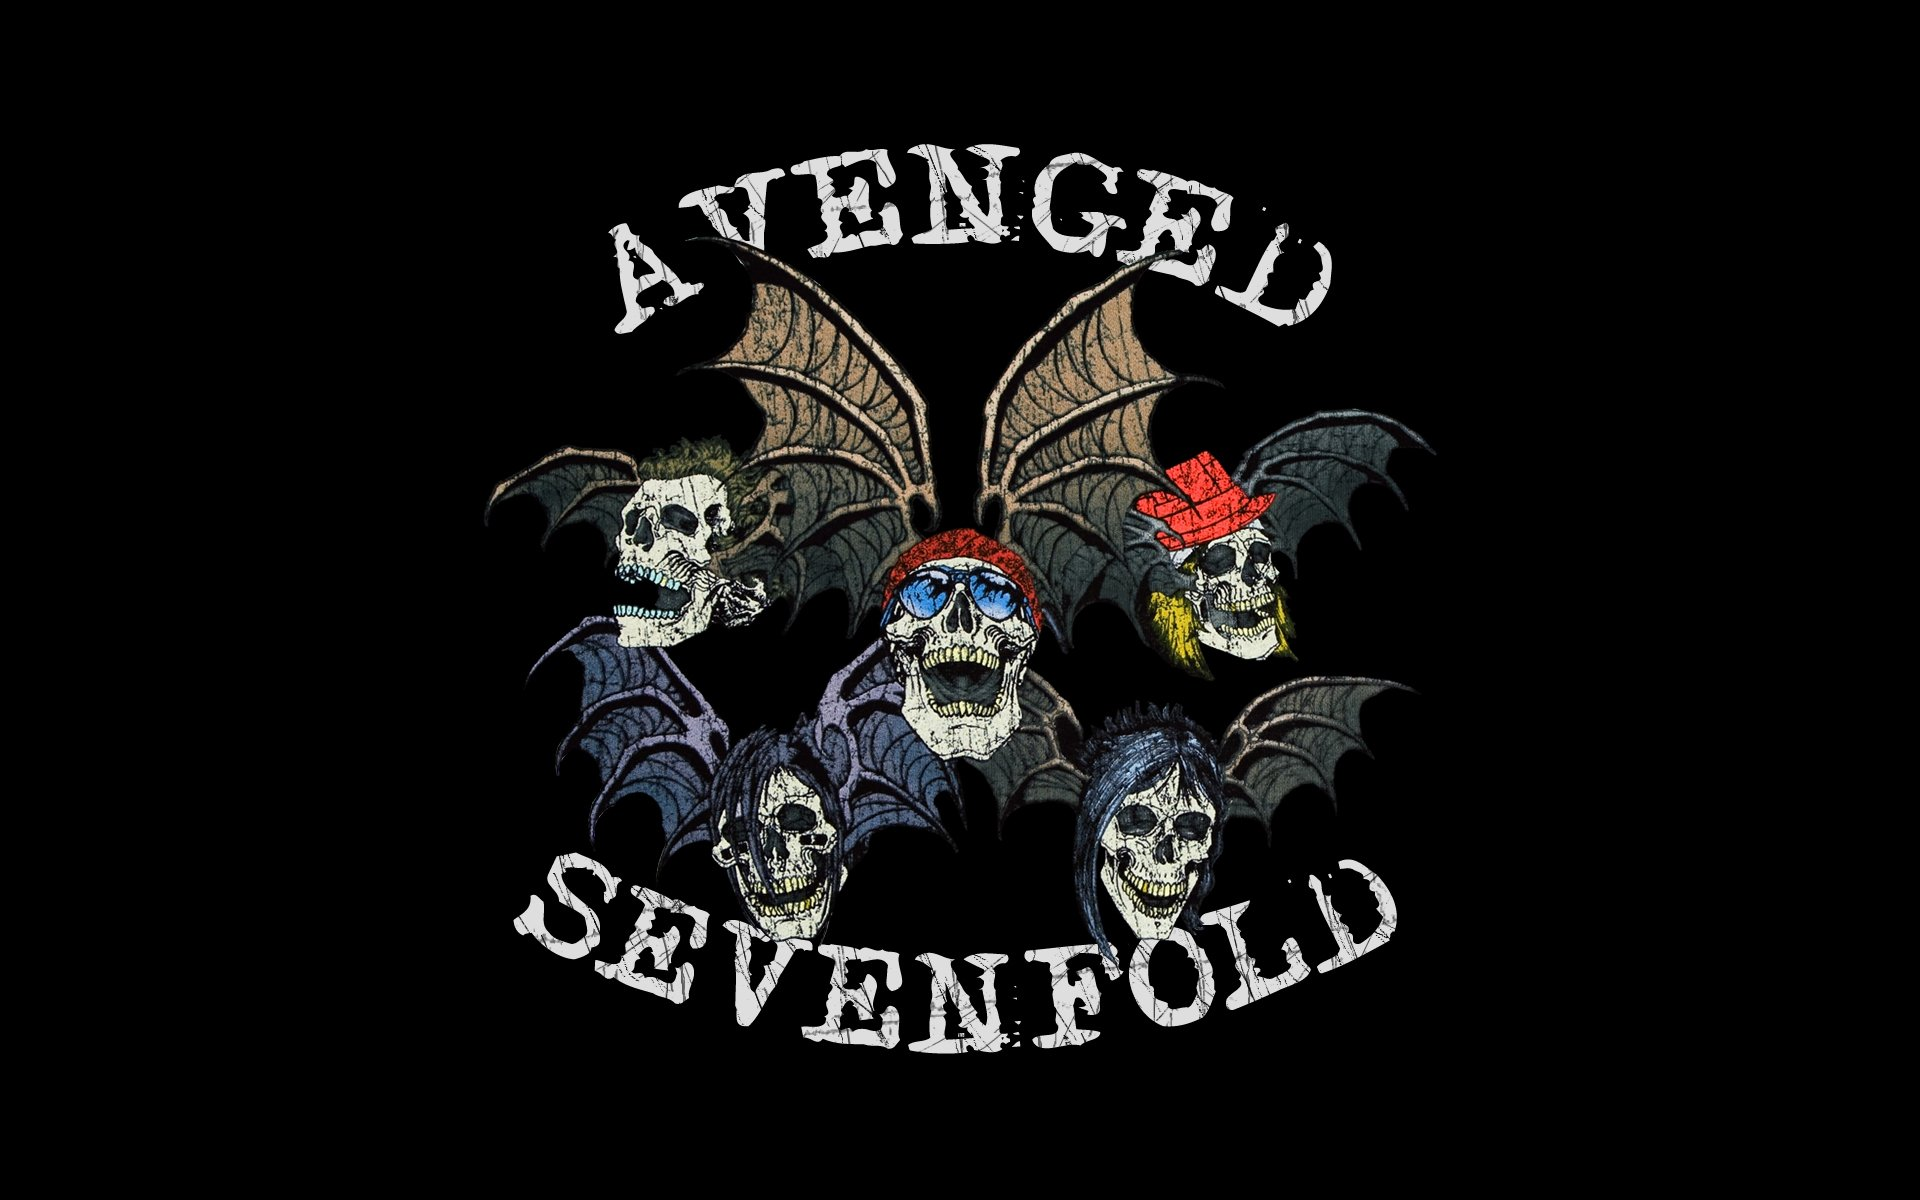 Special Forces Iphone Wallpaper Avenged Sevenfold Hd Wallpaper Background Image